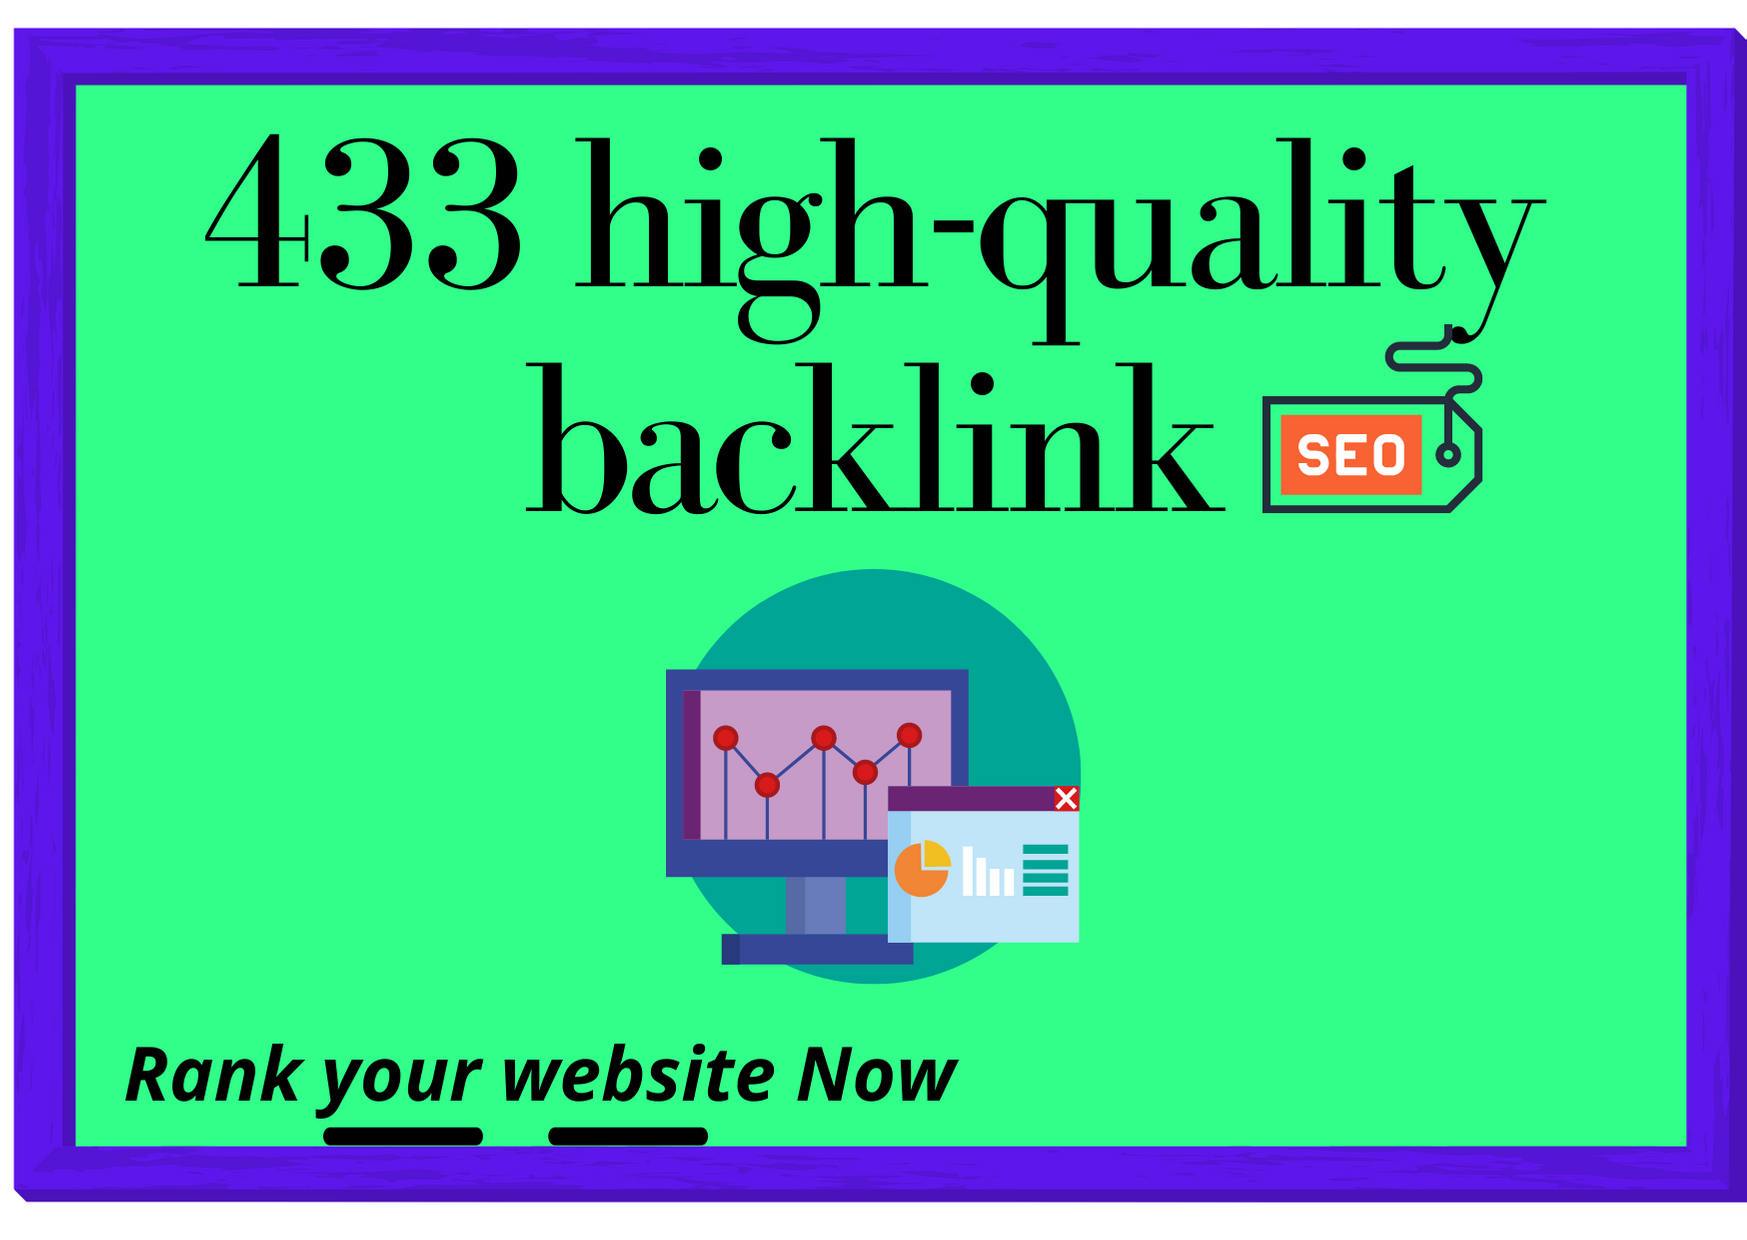 I will do monthly off-page seo with 430+ High-quality backlink for rank your website